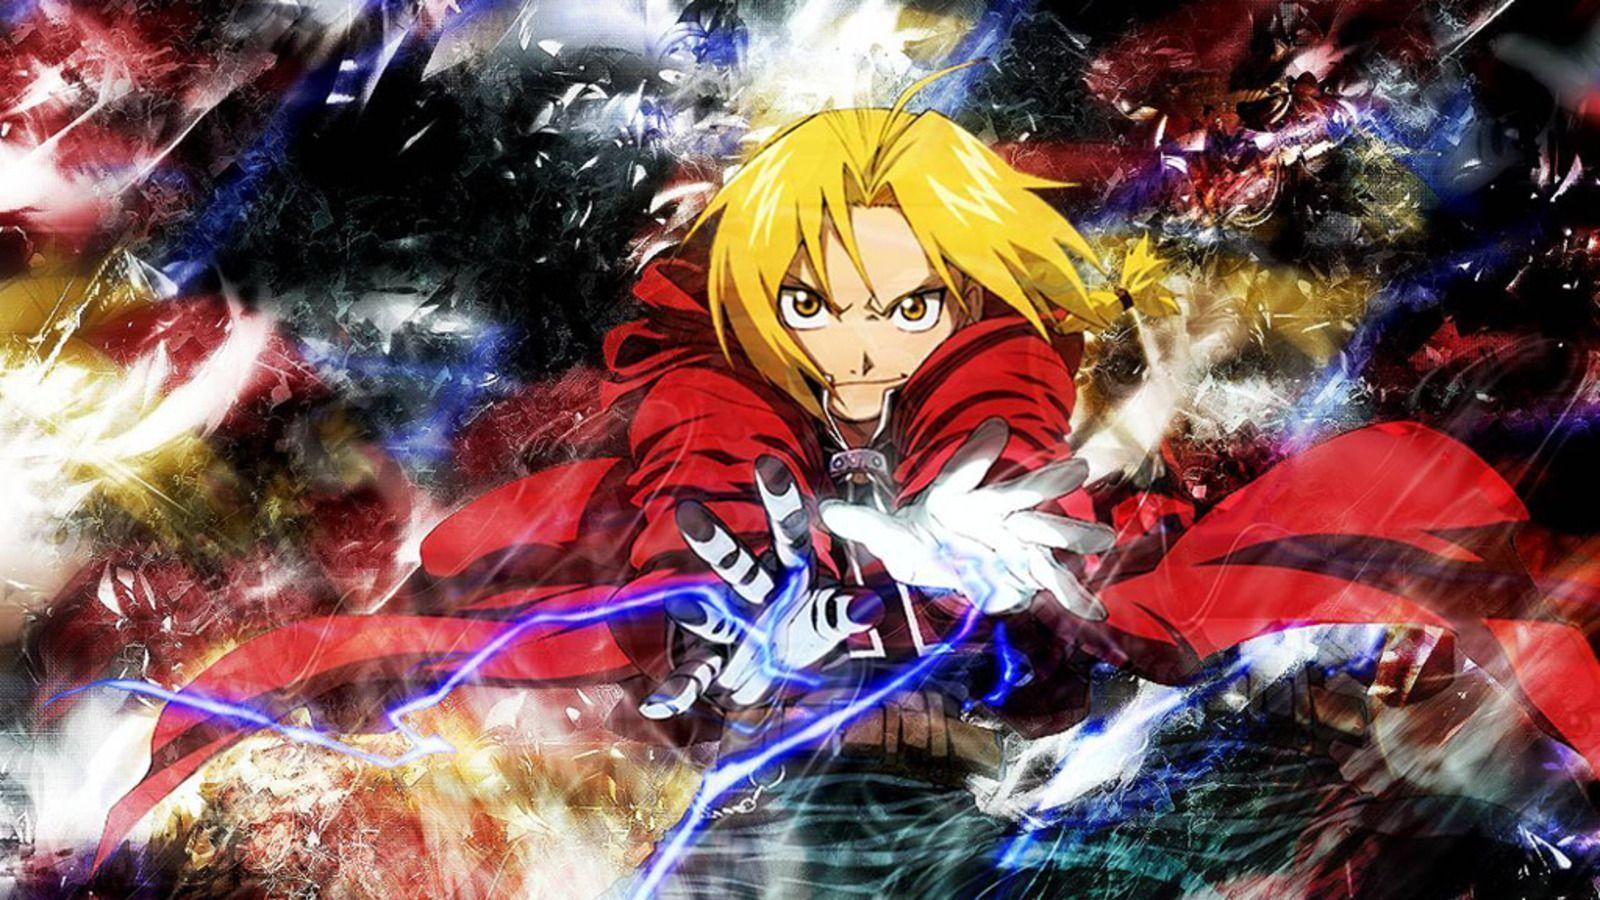 Fullmetal Alchemist Wallpapers HD 1600x900